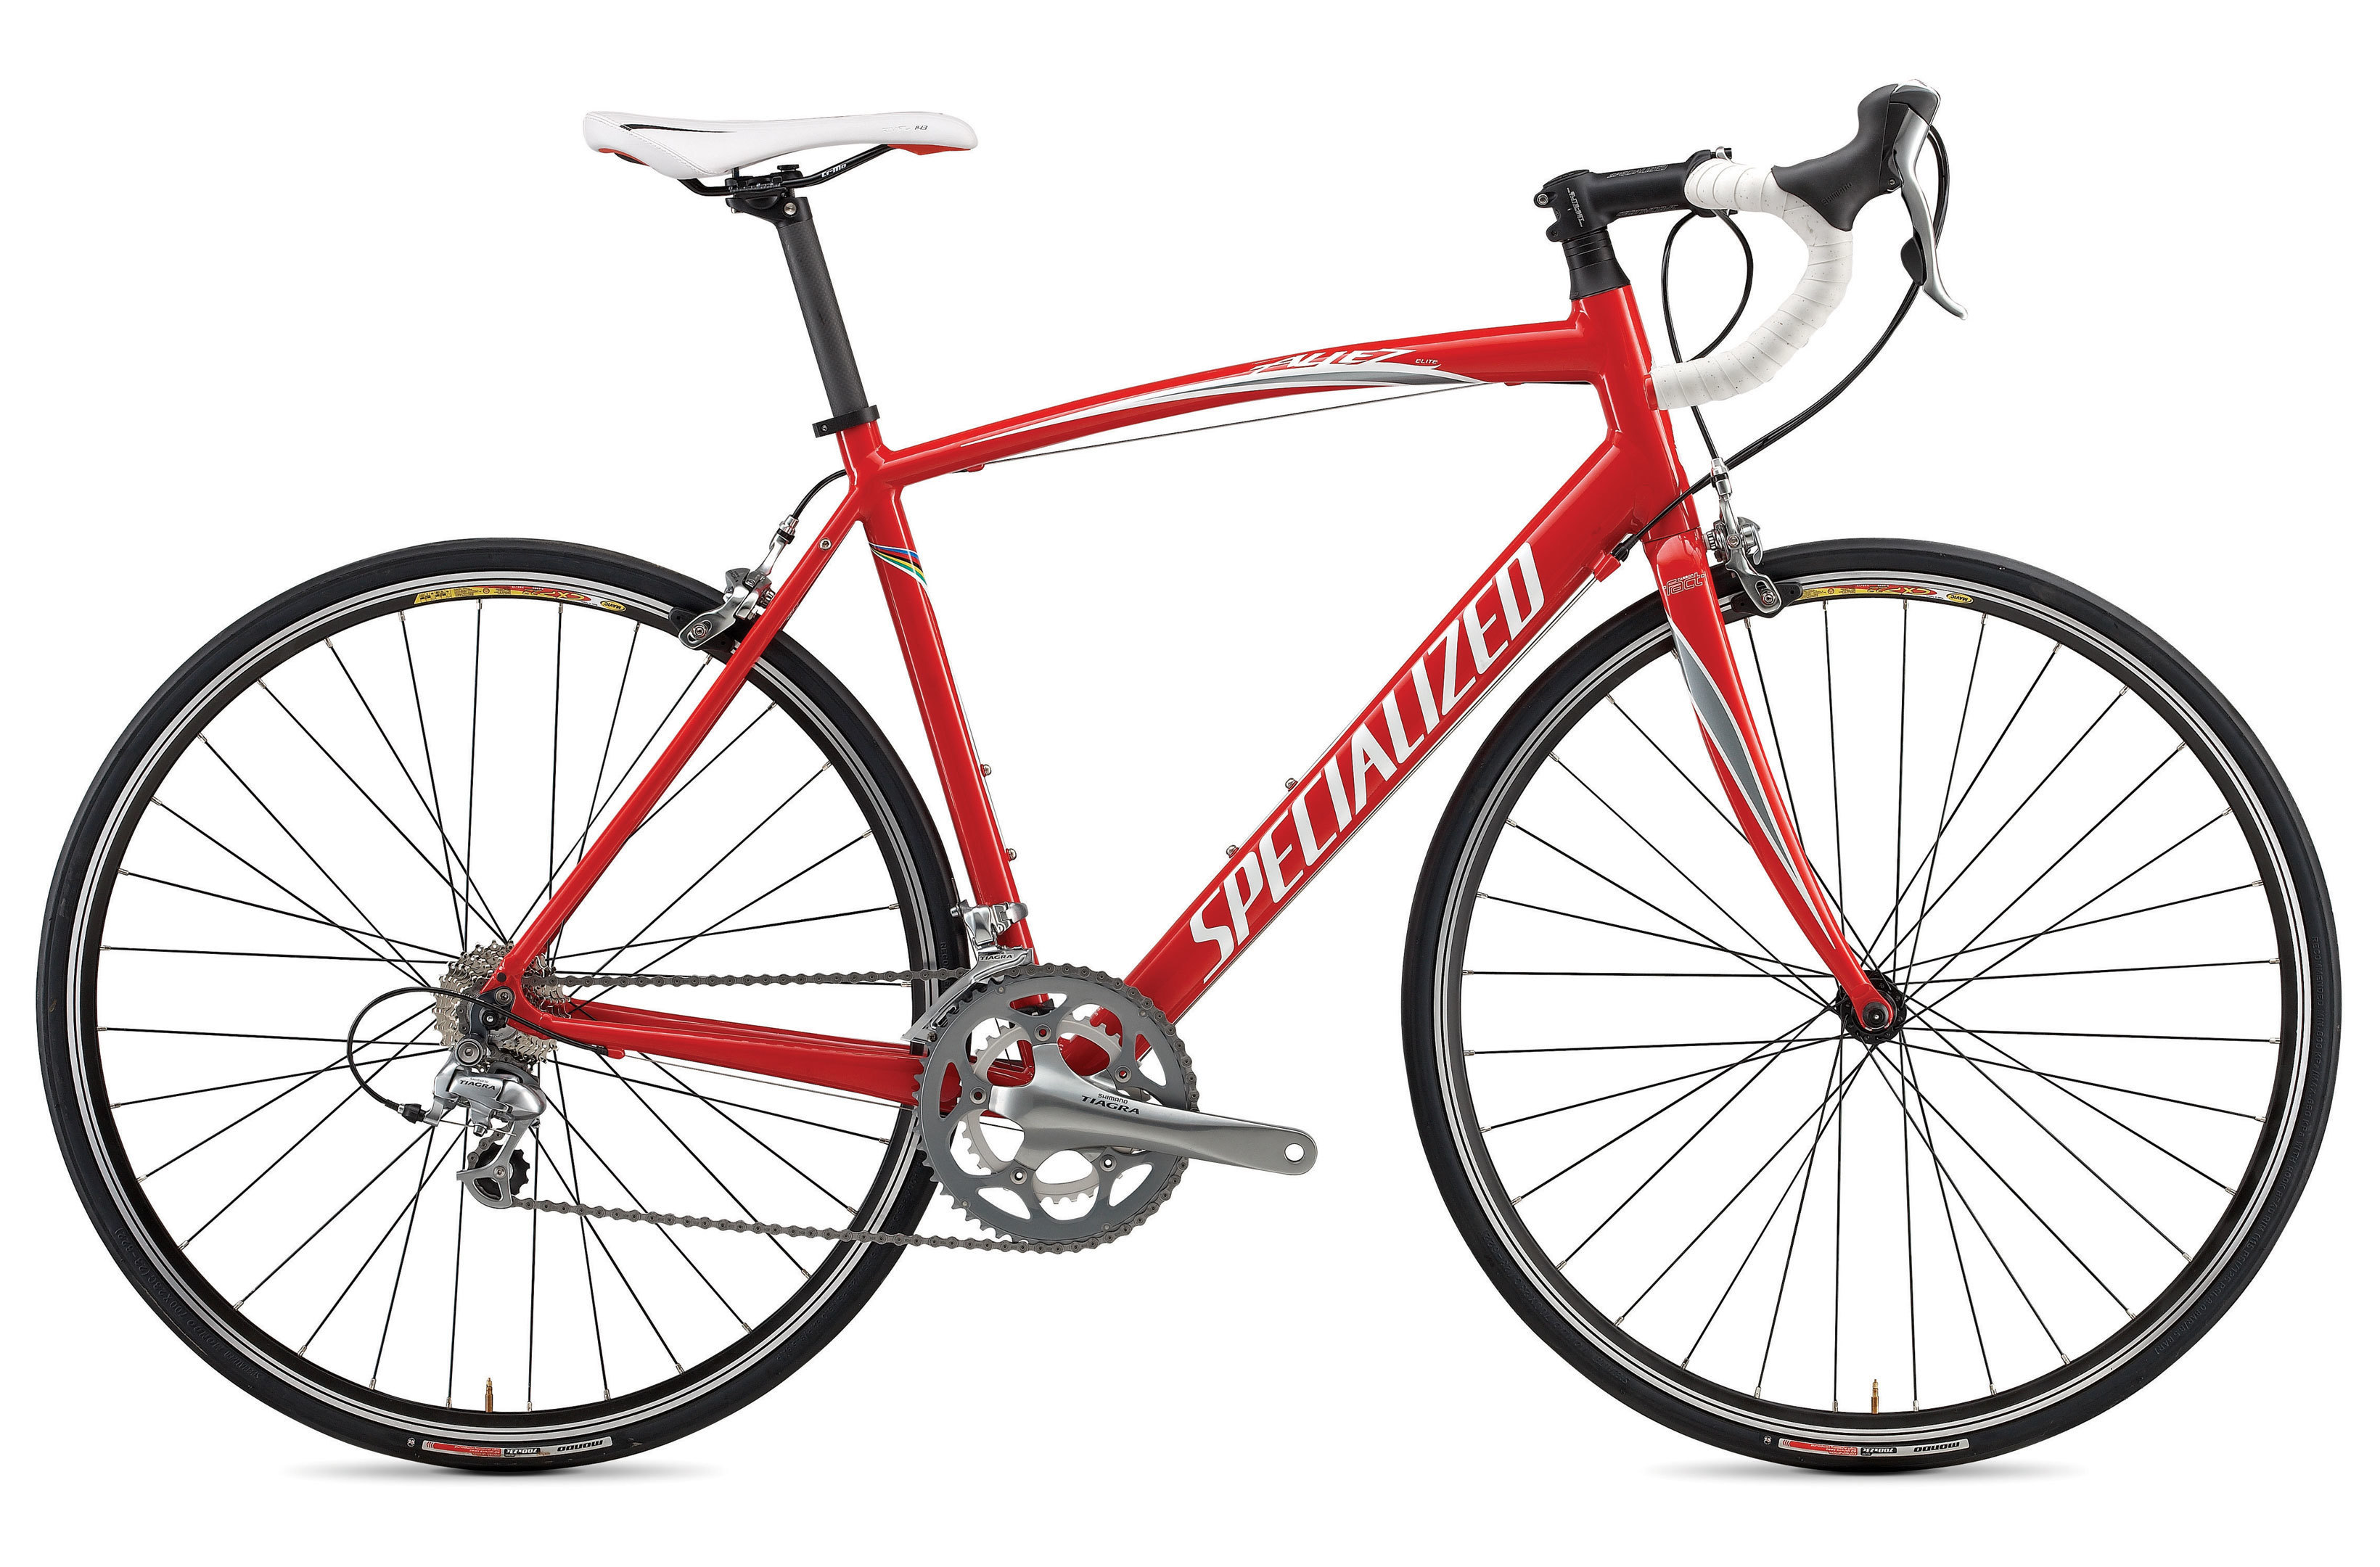 Stolen Specialized Allez A1 Elite